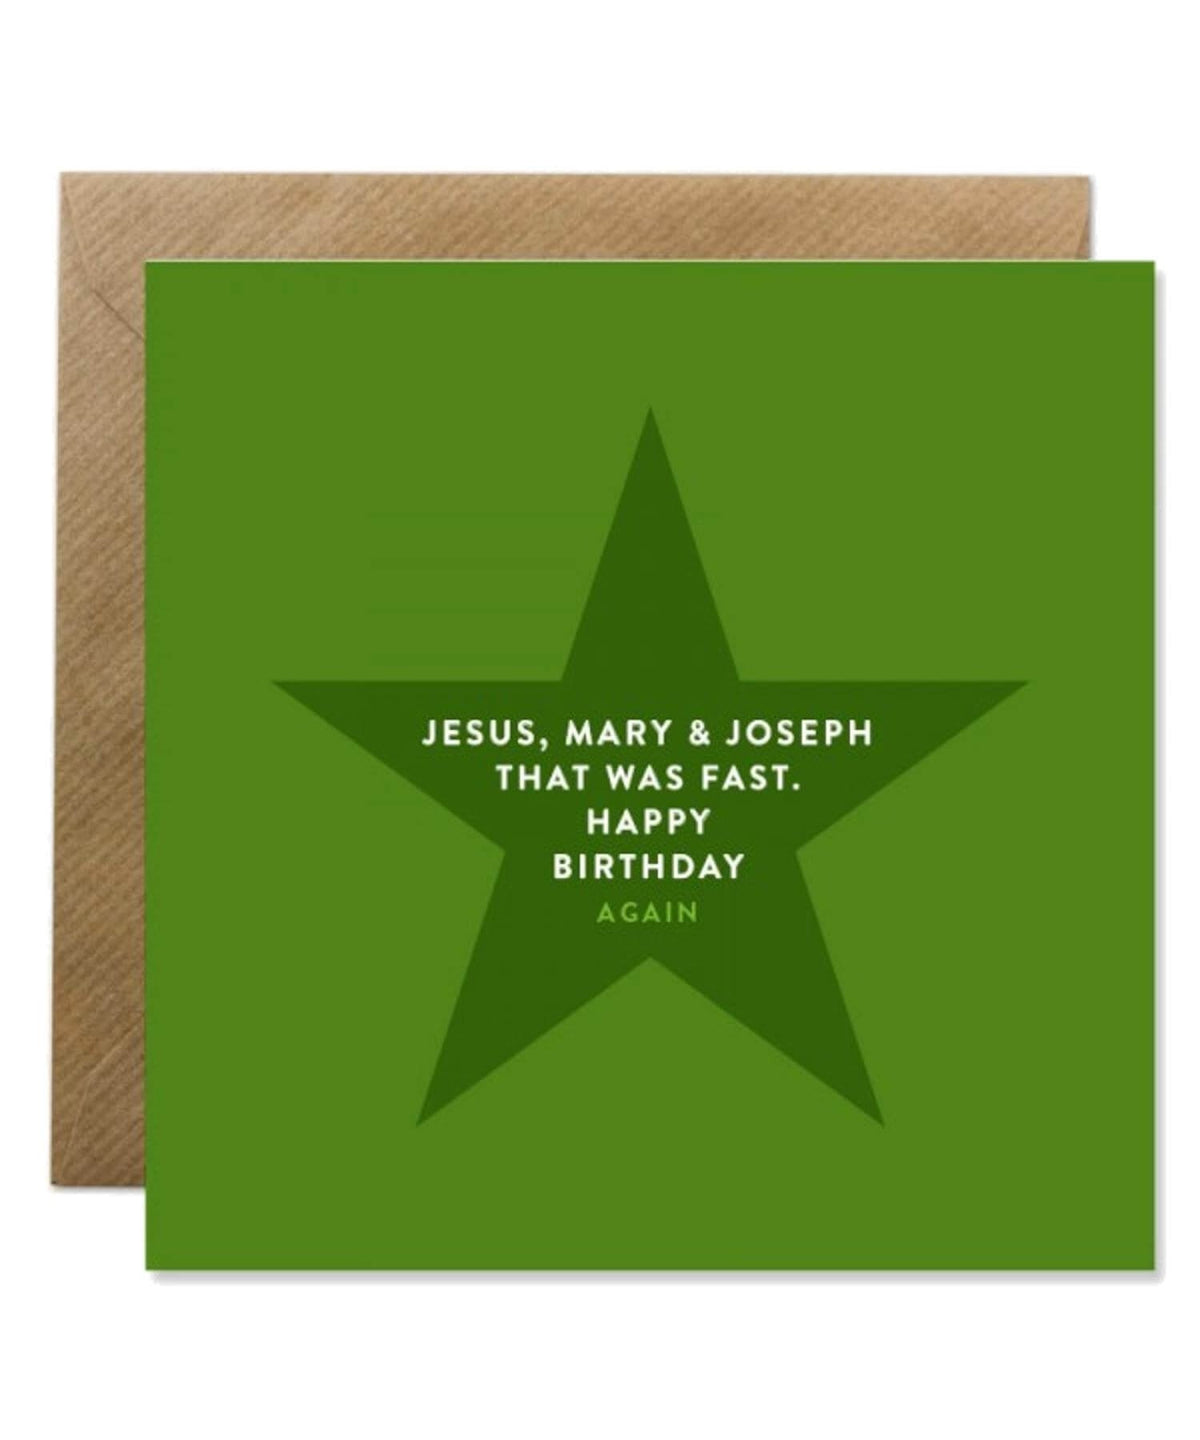 Greeting Card -Jesus Mary & Joseph Bold Bunny Cards